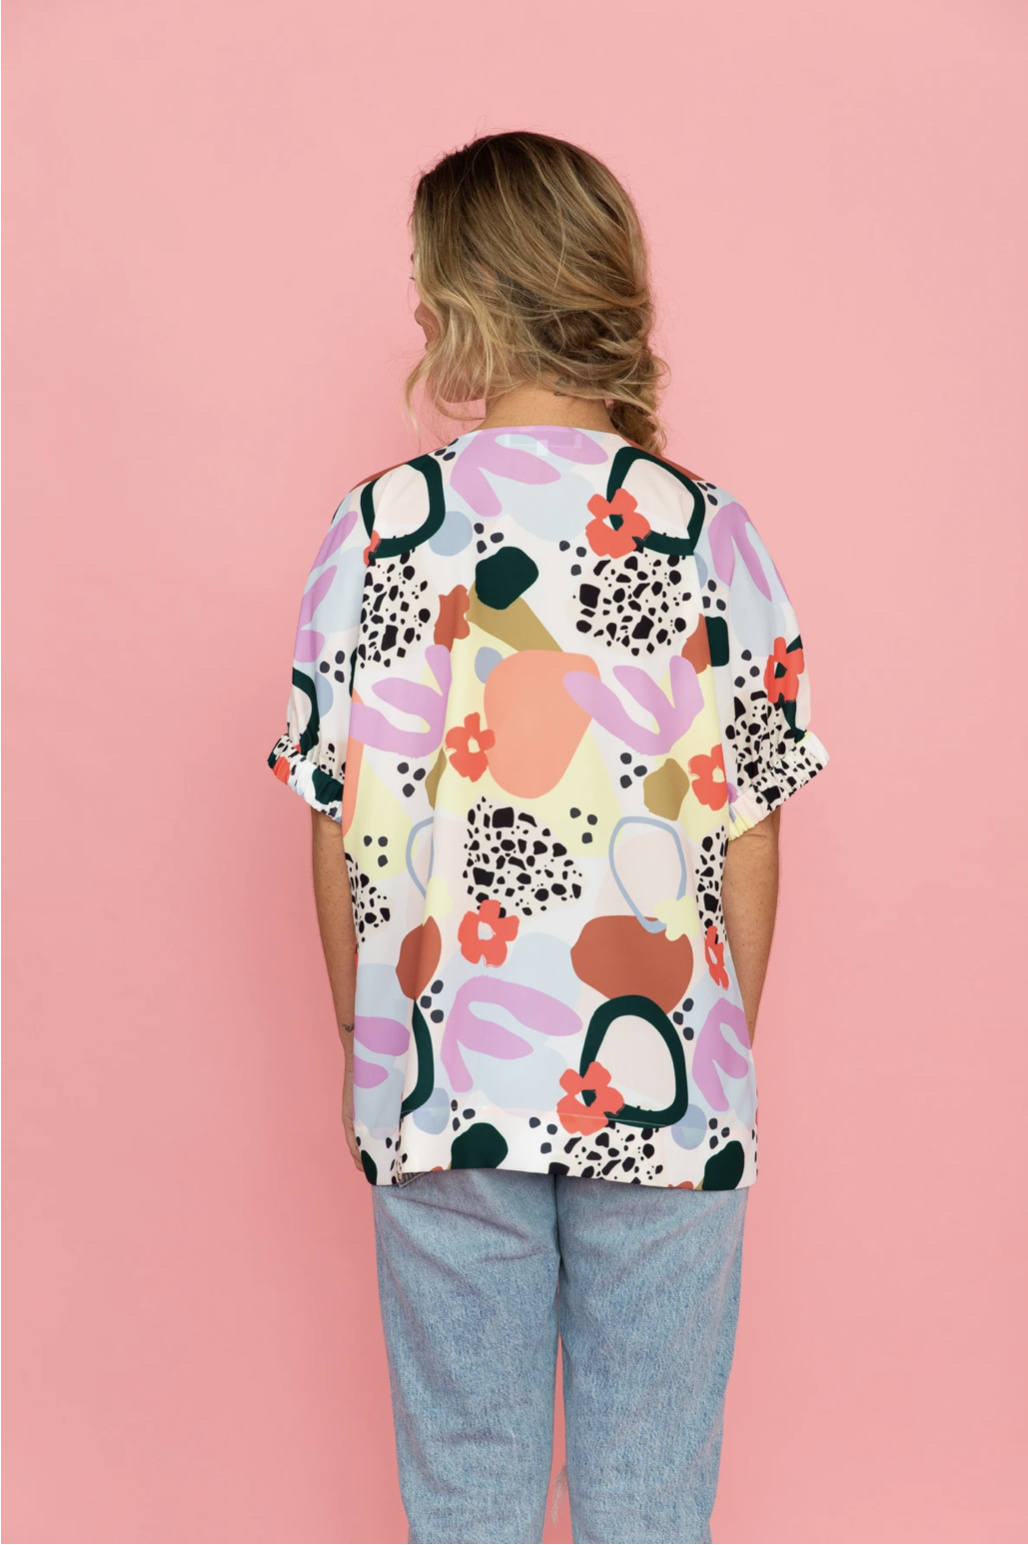 Crosby by Mollie Burch Nora Top